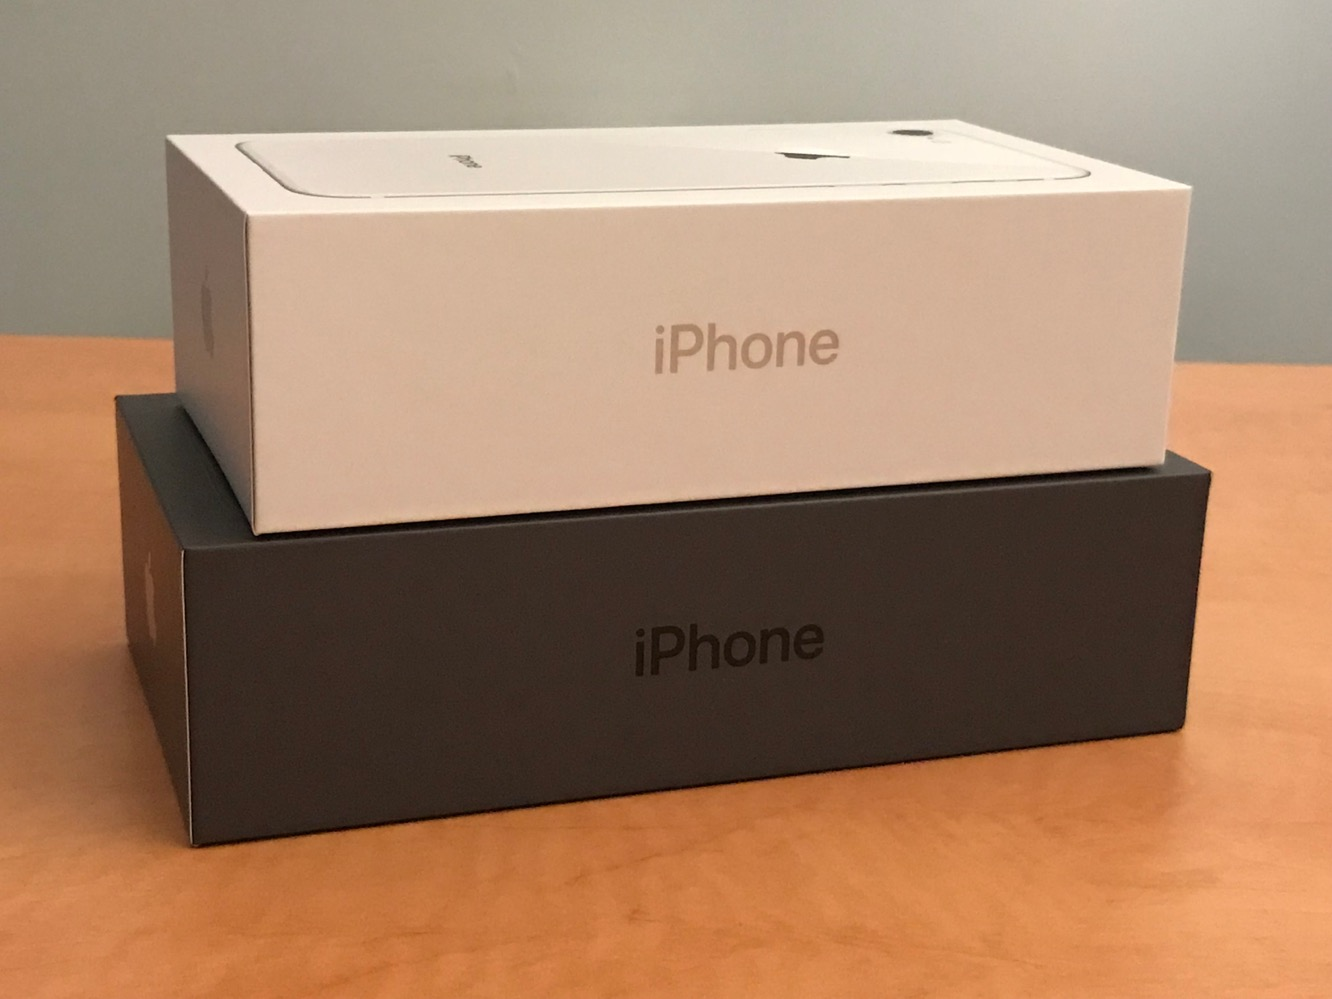 The New IPhones Both Ship With IOS 11 Keep Your Eyes Out For Our Full Independent Comprehensive Review Of IPhone Models Next Week Once Weve Had